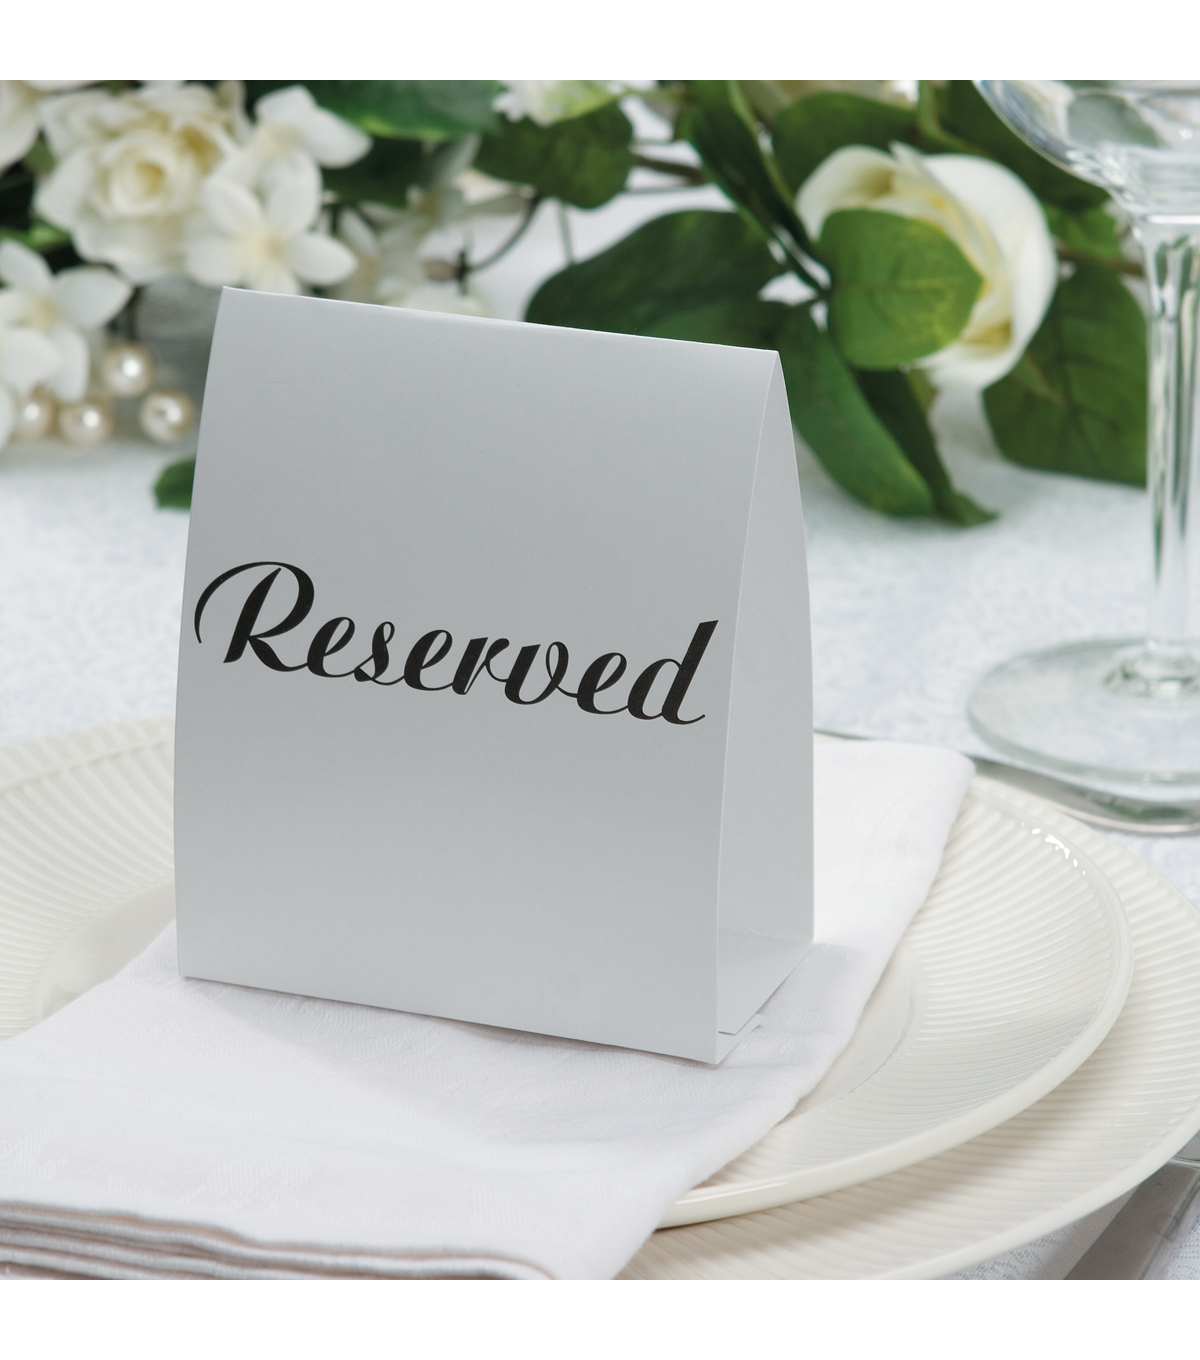 Darice® 12pk Reserved Table Tent Cards : dry erase table tents - memphite.com